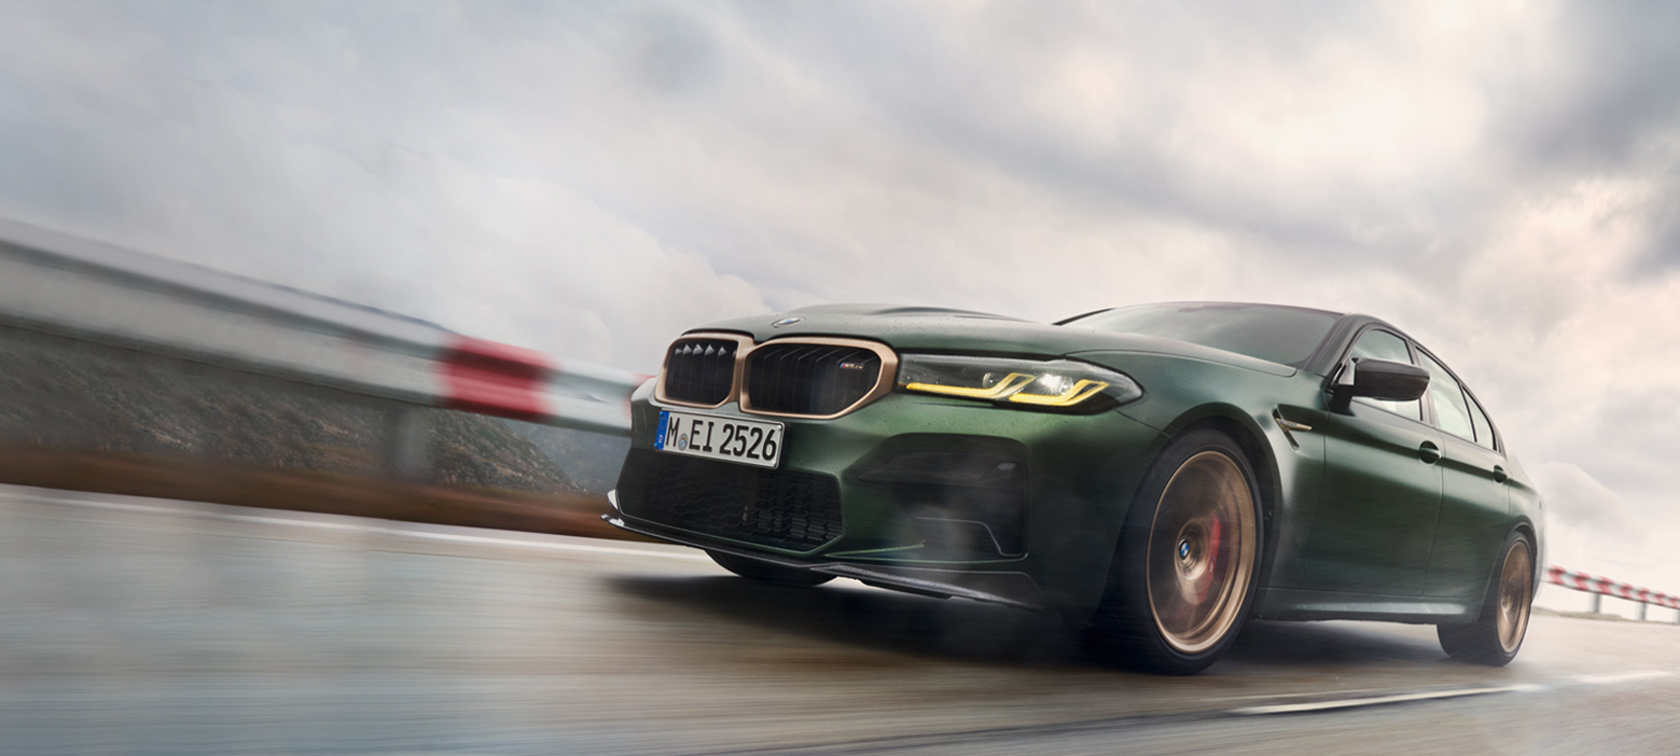 BMW M5 CS F90 2021 Frozen Deep Green metallic, vue de trois quarts avant